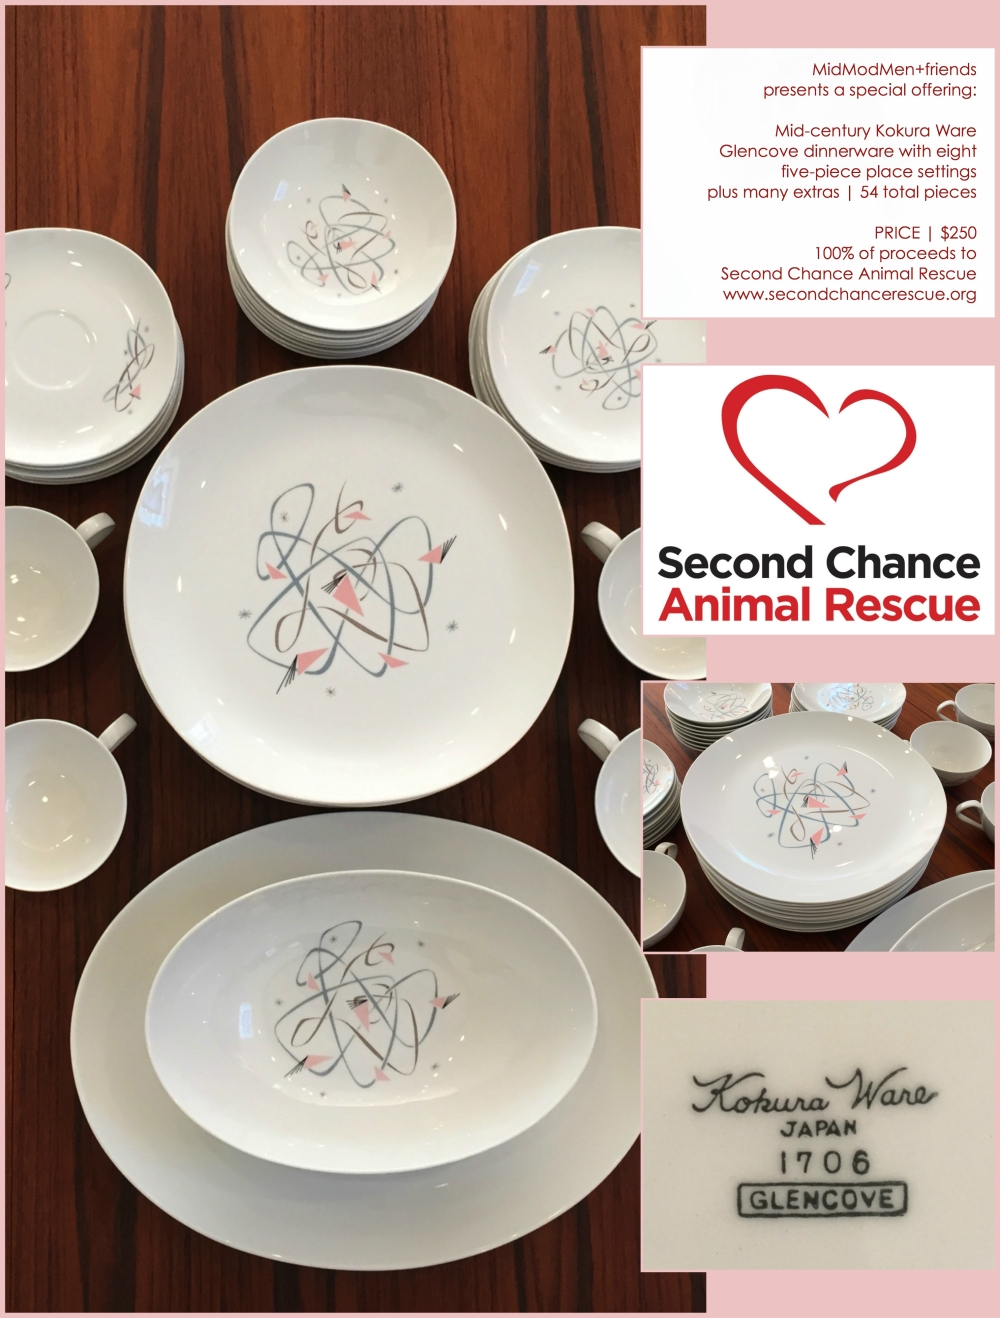 SECOND-CHANCE_promo_collage-TEXT